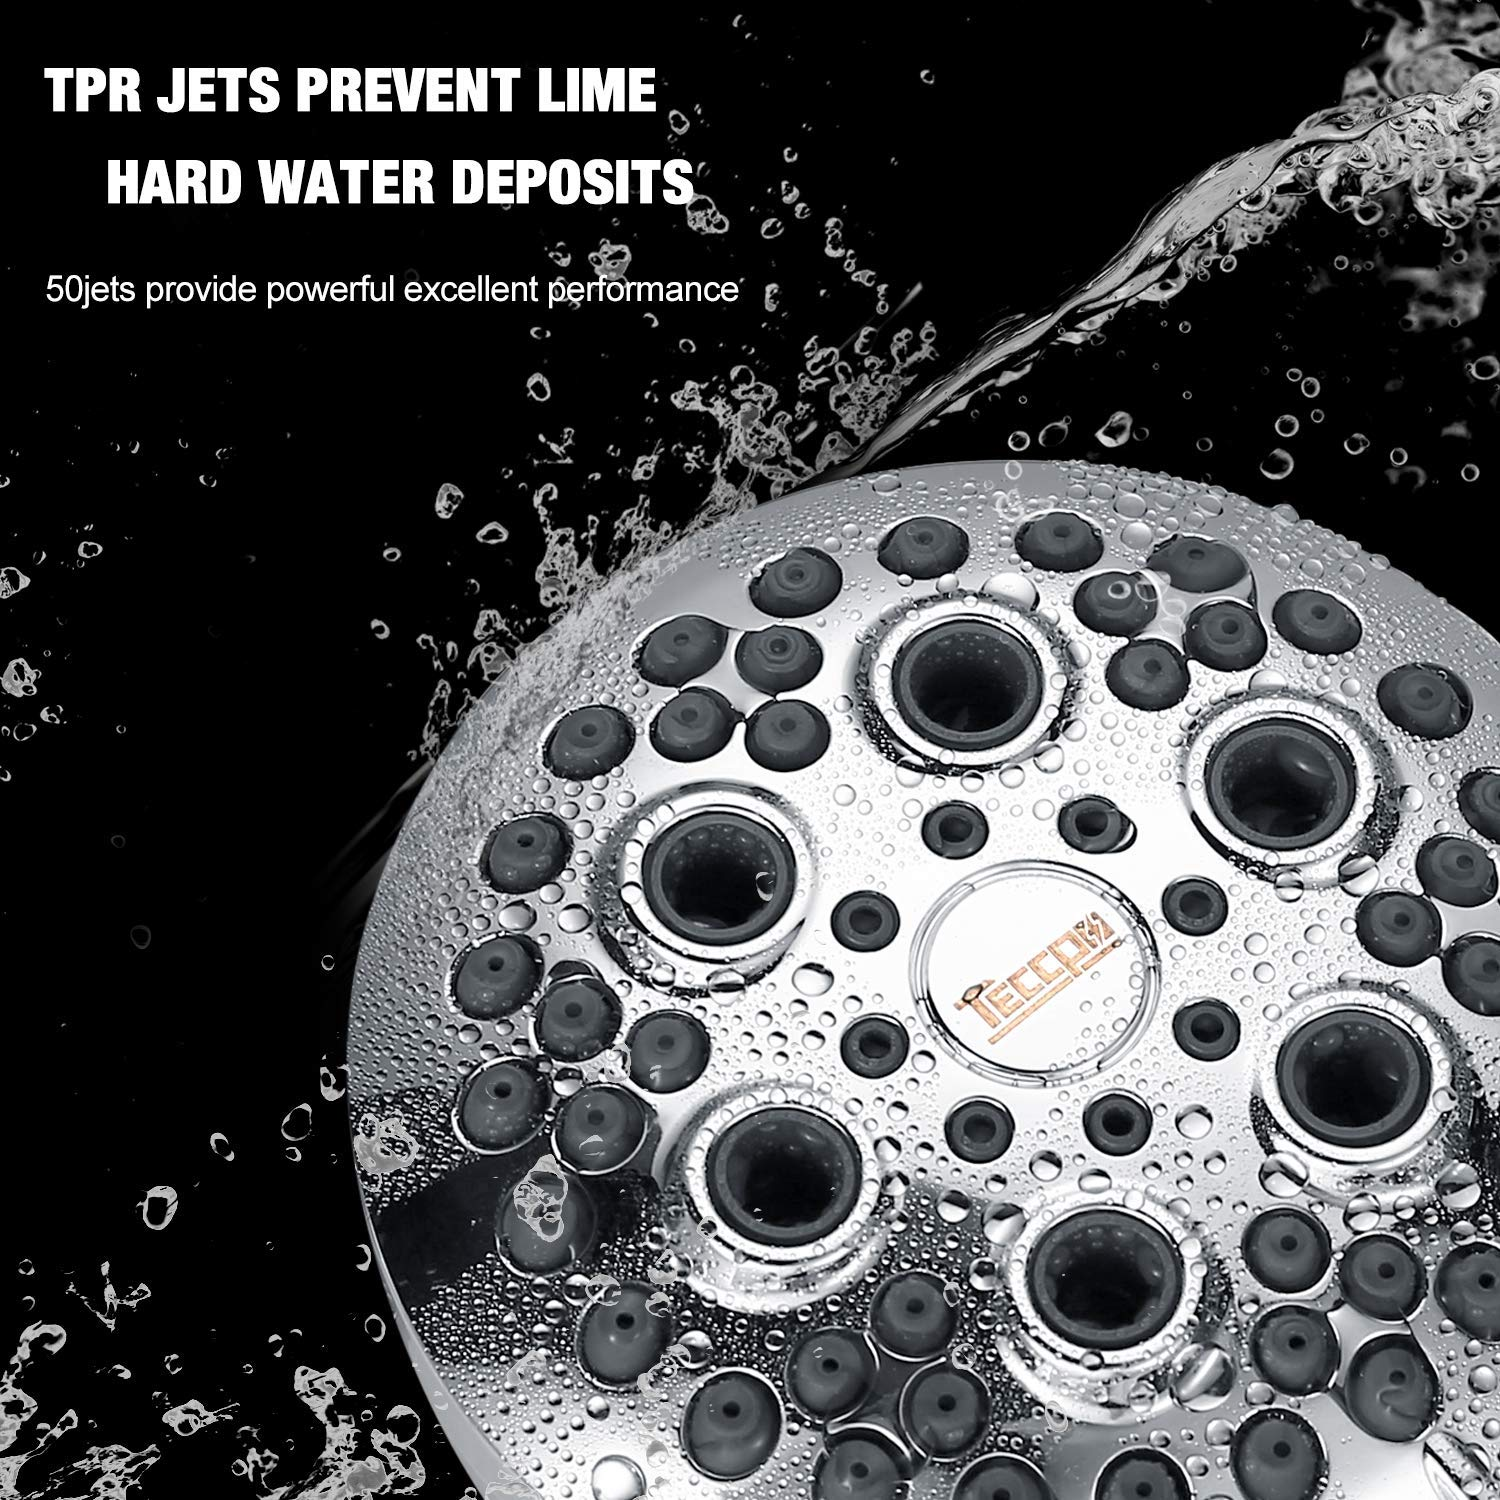 self-cleaning and water-saving high pressure shower head Shower Head TECCPO 3.5 Inch 5-Setting High Pressure Shower Head with chrome-plated finish pure copper connector